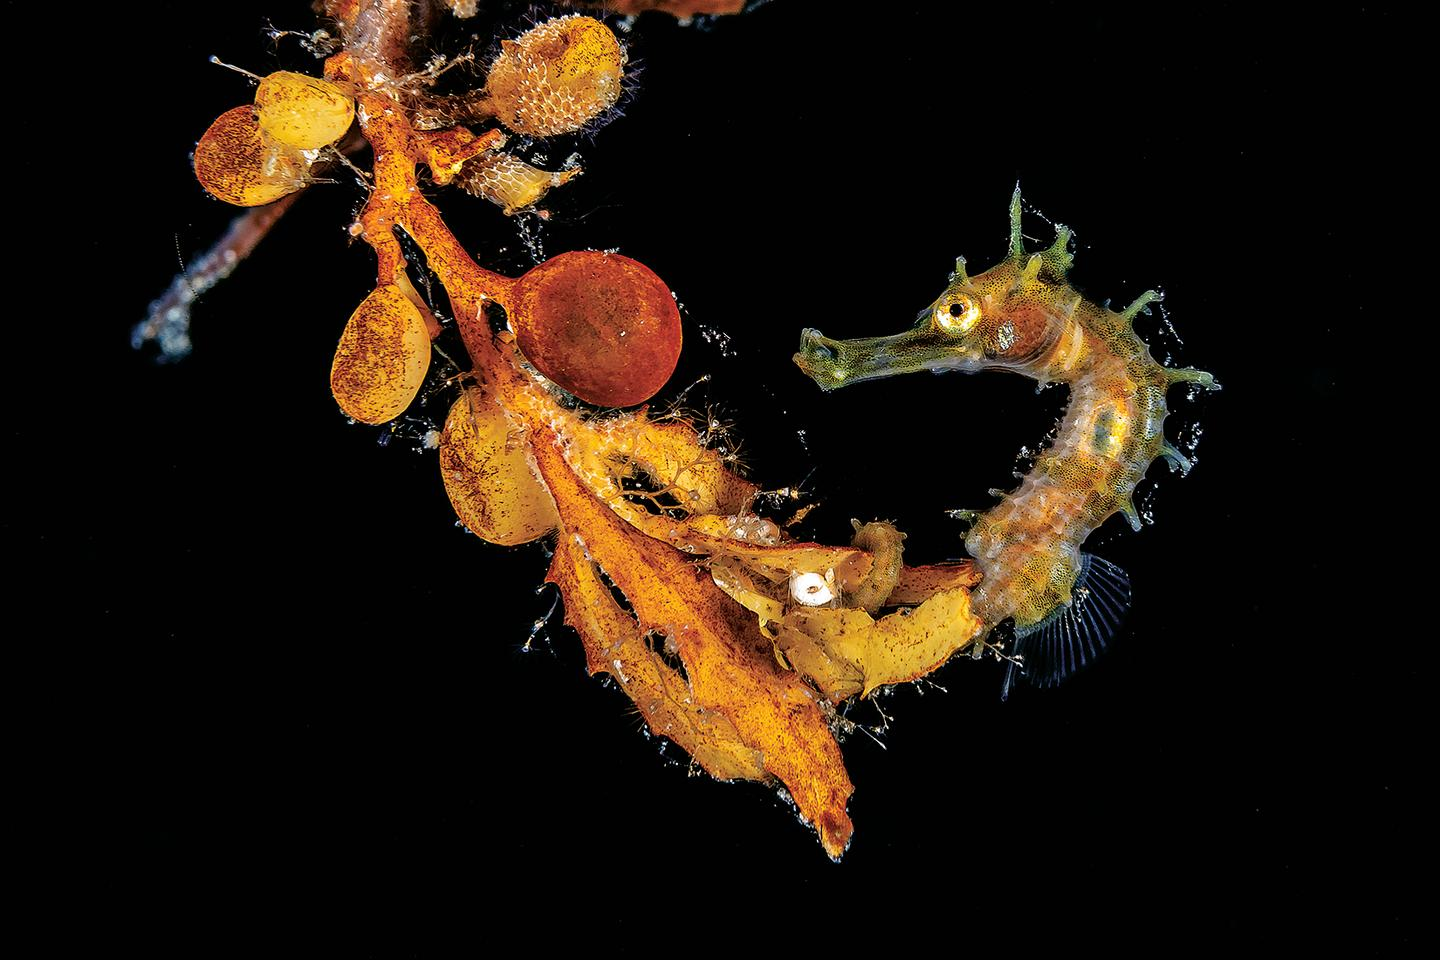 Winner - Macro. West Palm Beach, Florida. A seahorse floating on a small clump of sargassum